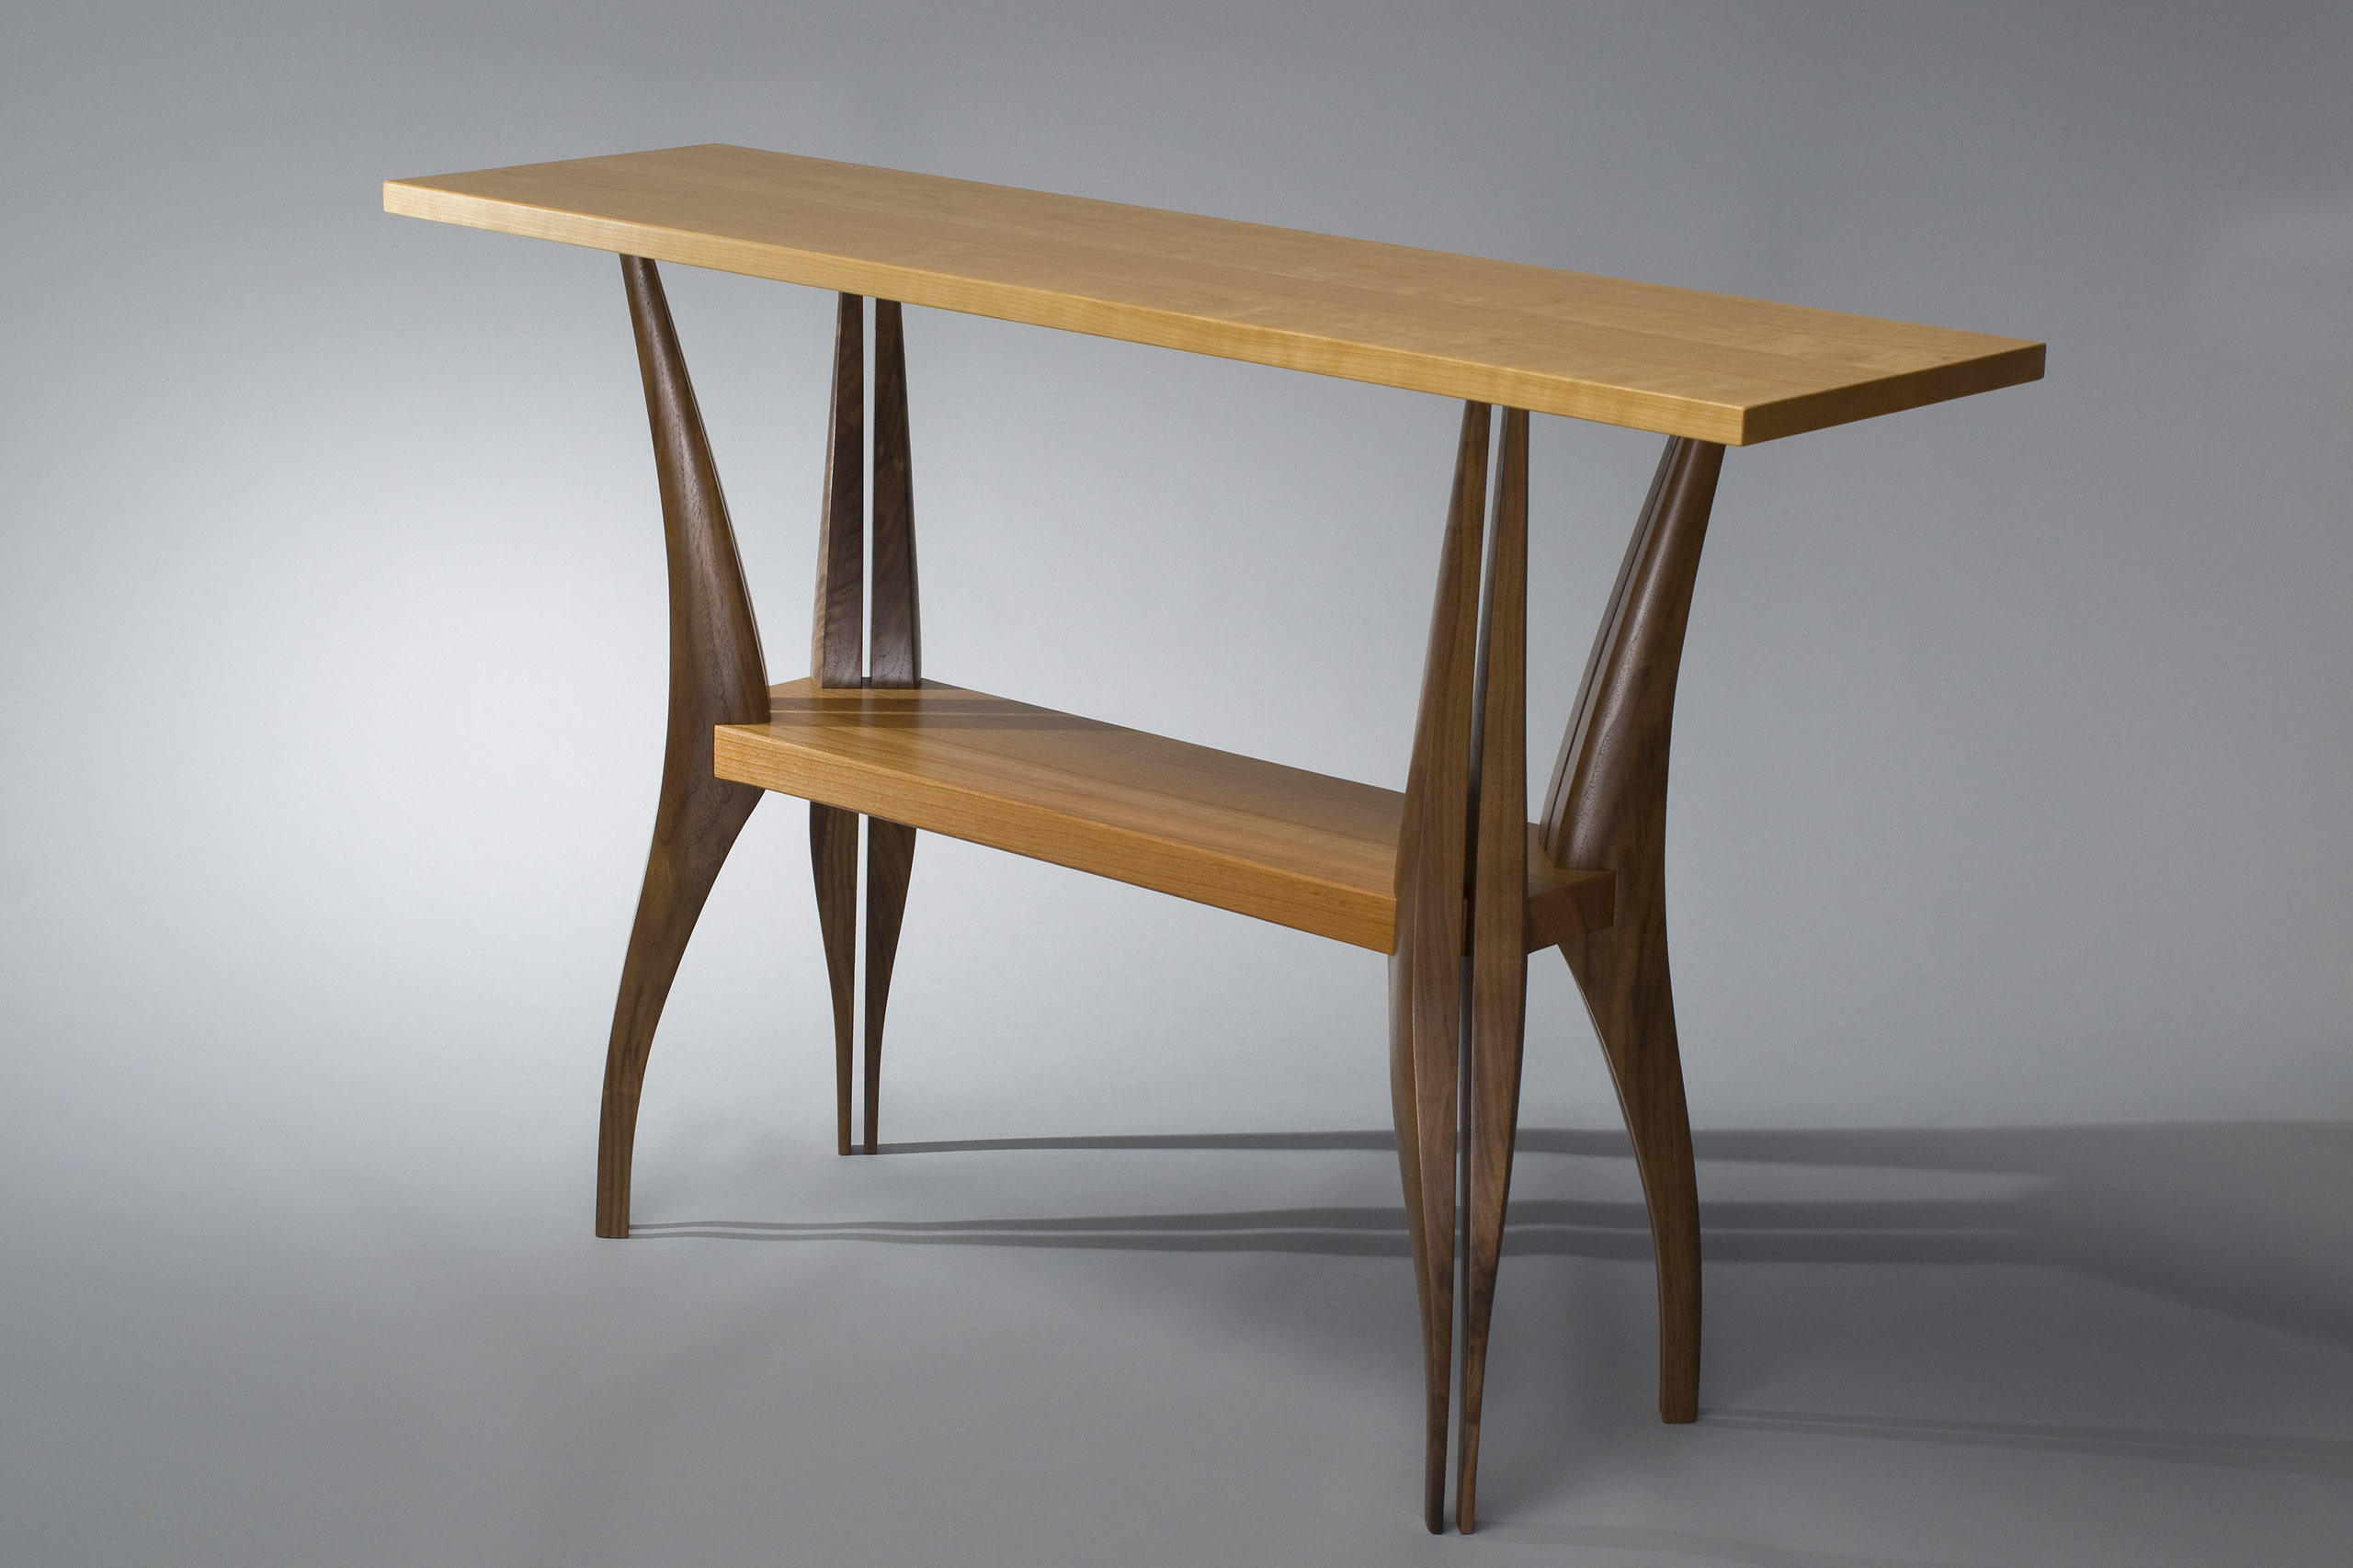 Gazelle Hall Table Solid Walnut And Cherry Wood Table